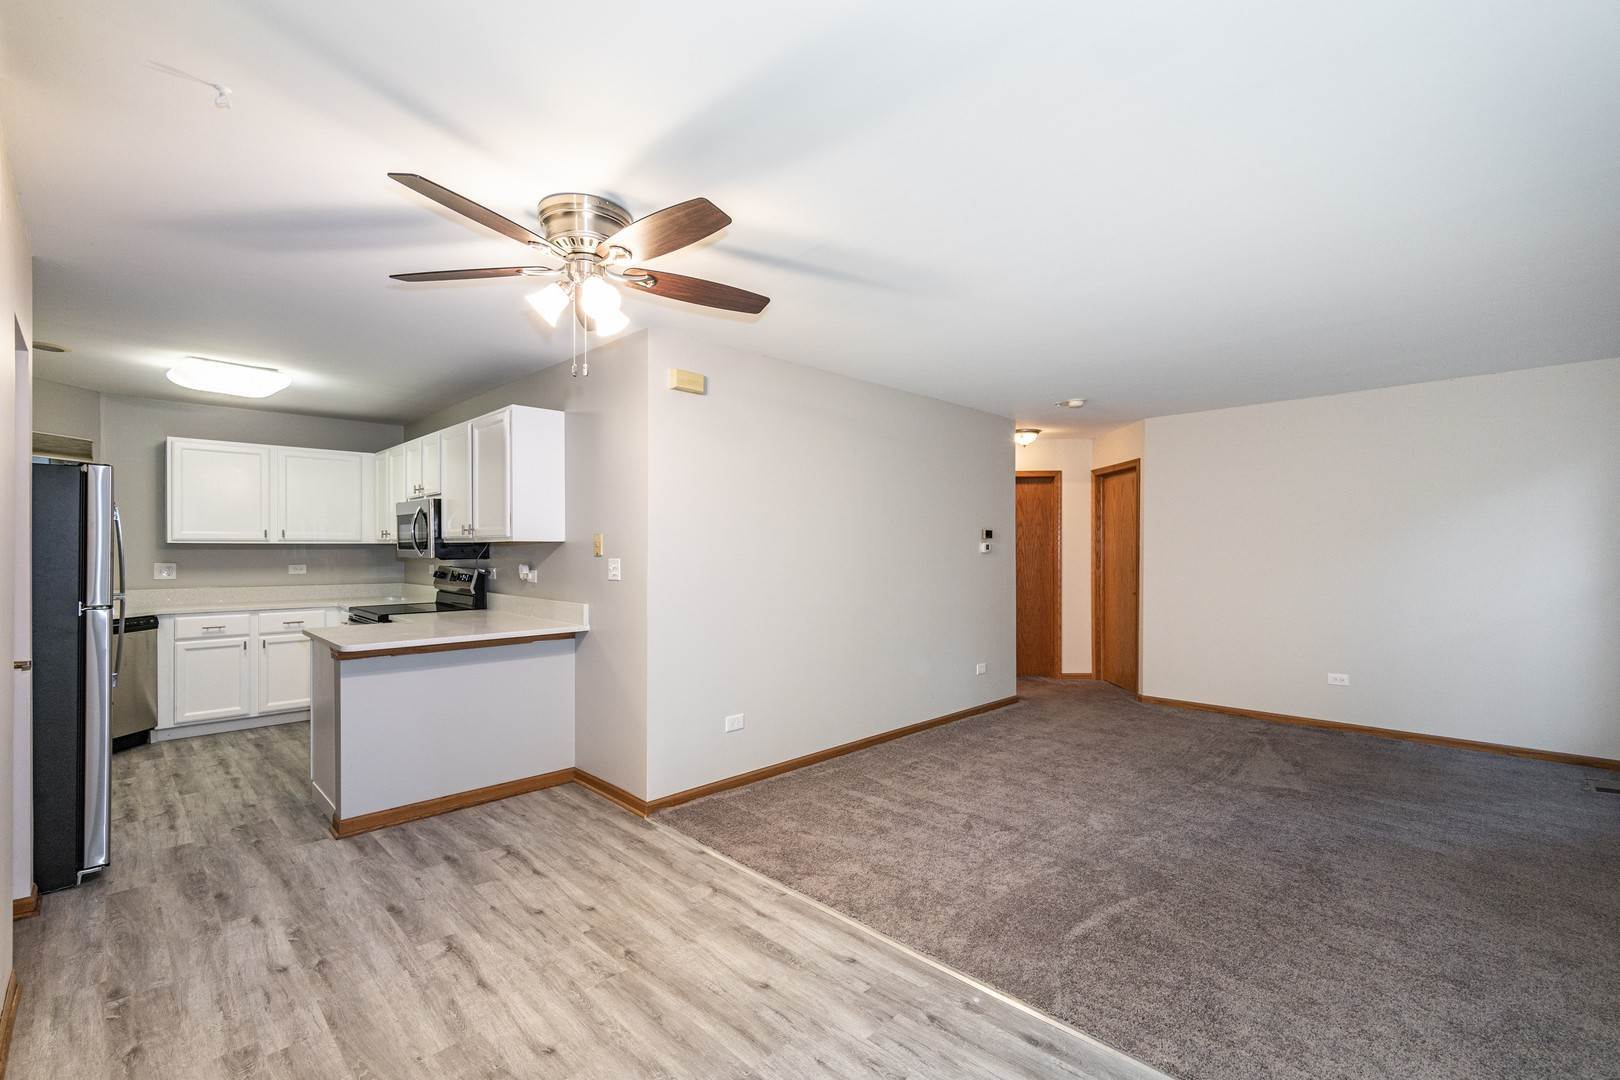 住宅租賃 在 214 N Cathy Lane Mount Prospect, 伊利諾斯州 60056 美國